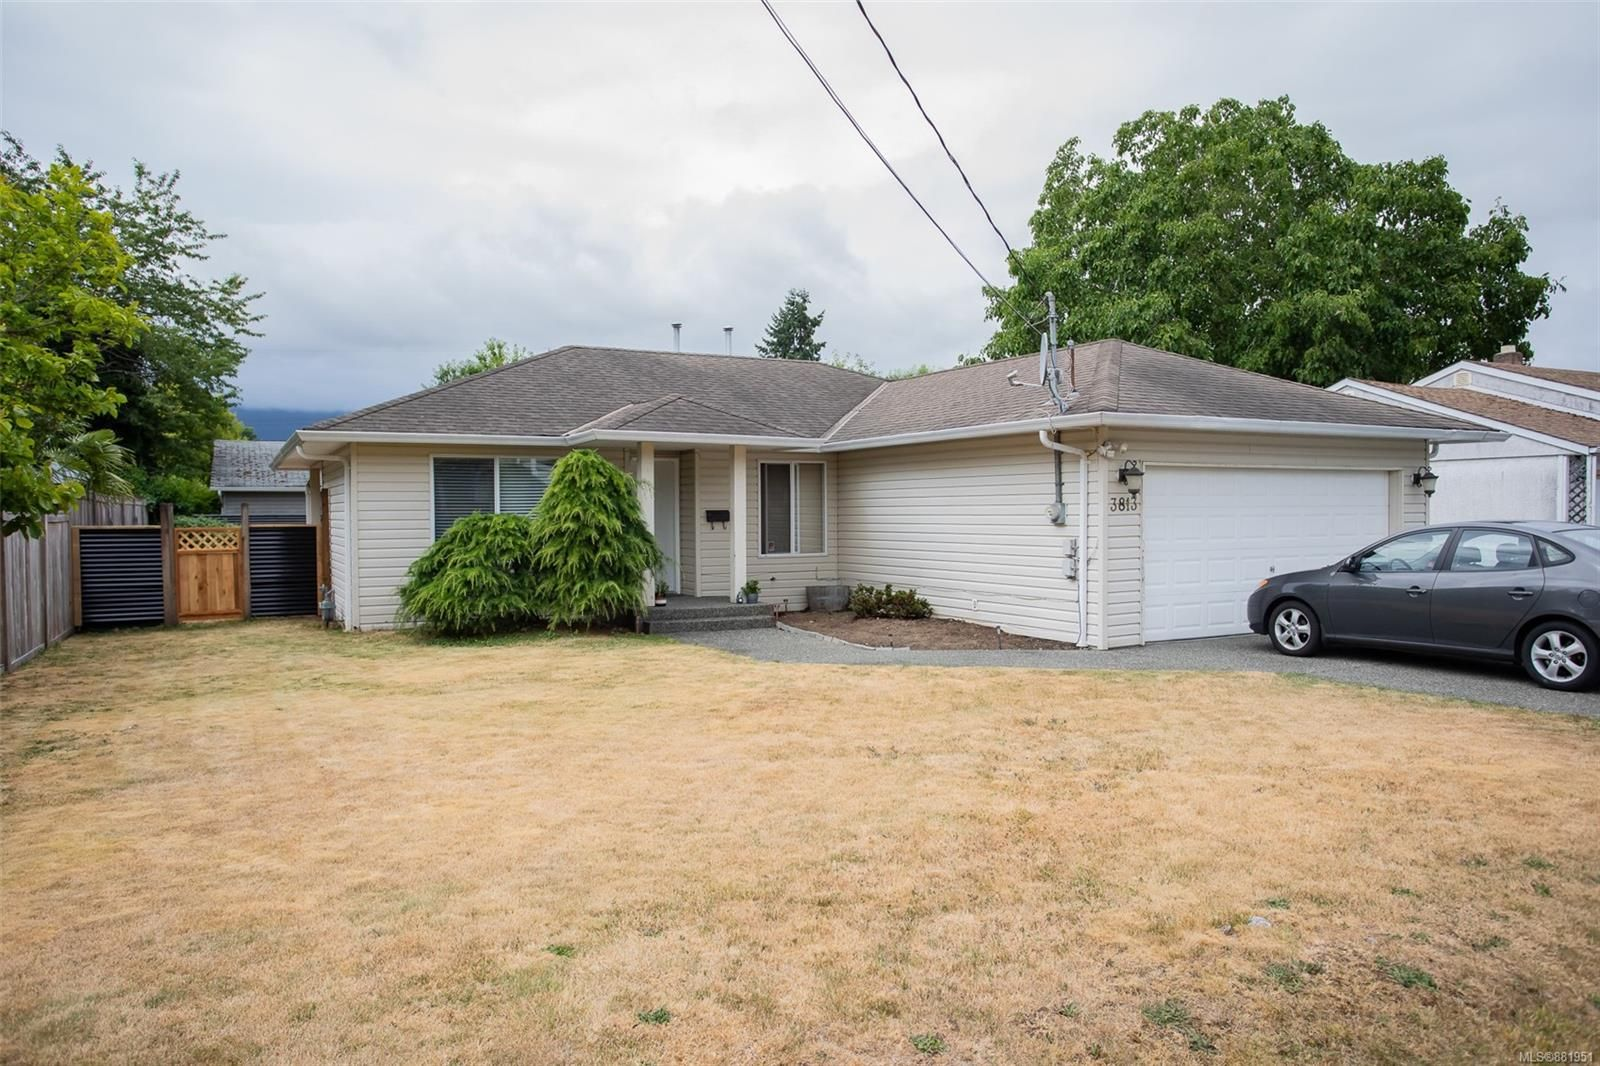 Main Photo: 3813 Wellesley Ave in : Na Uplands House for sale (Nanaimo)  : MLS®# 881951